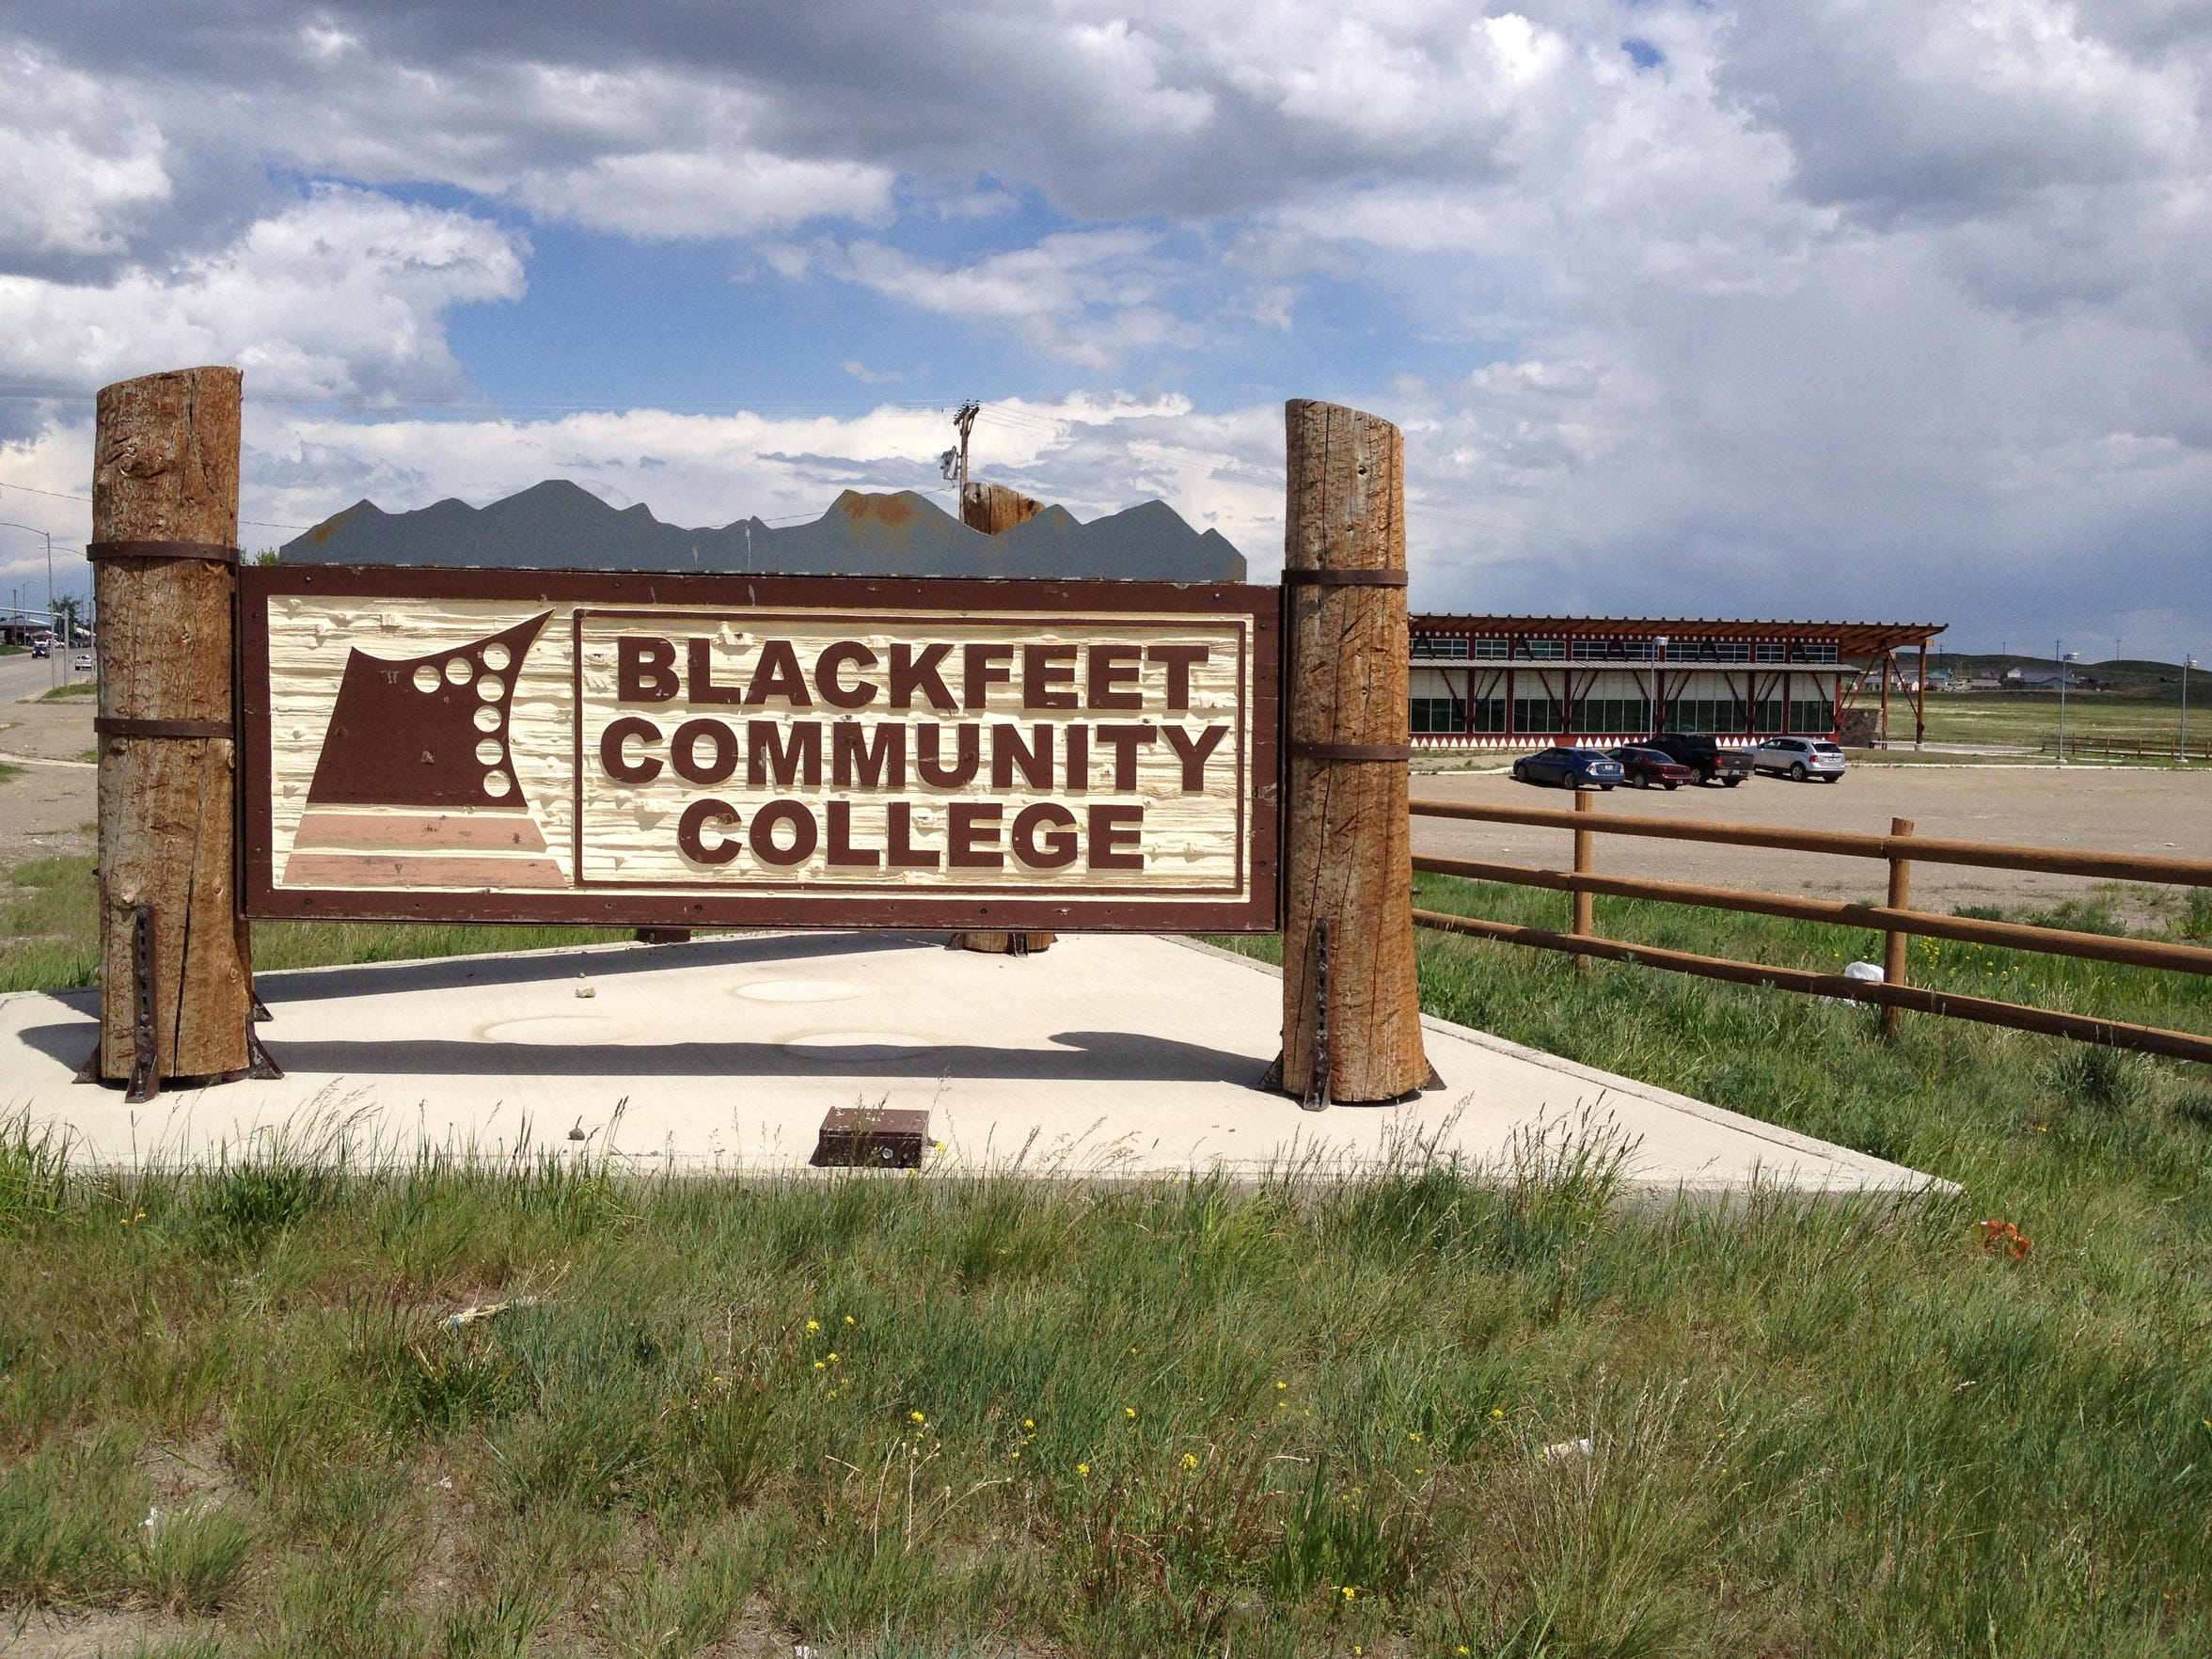 Thanks to Carol Murray, the Blackfeet Community College works to raise awareness of the Baker Massacre by planning commemoration events and hosting guest speakers.